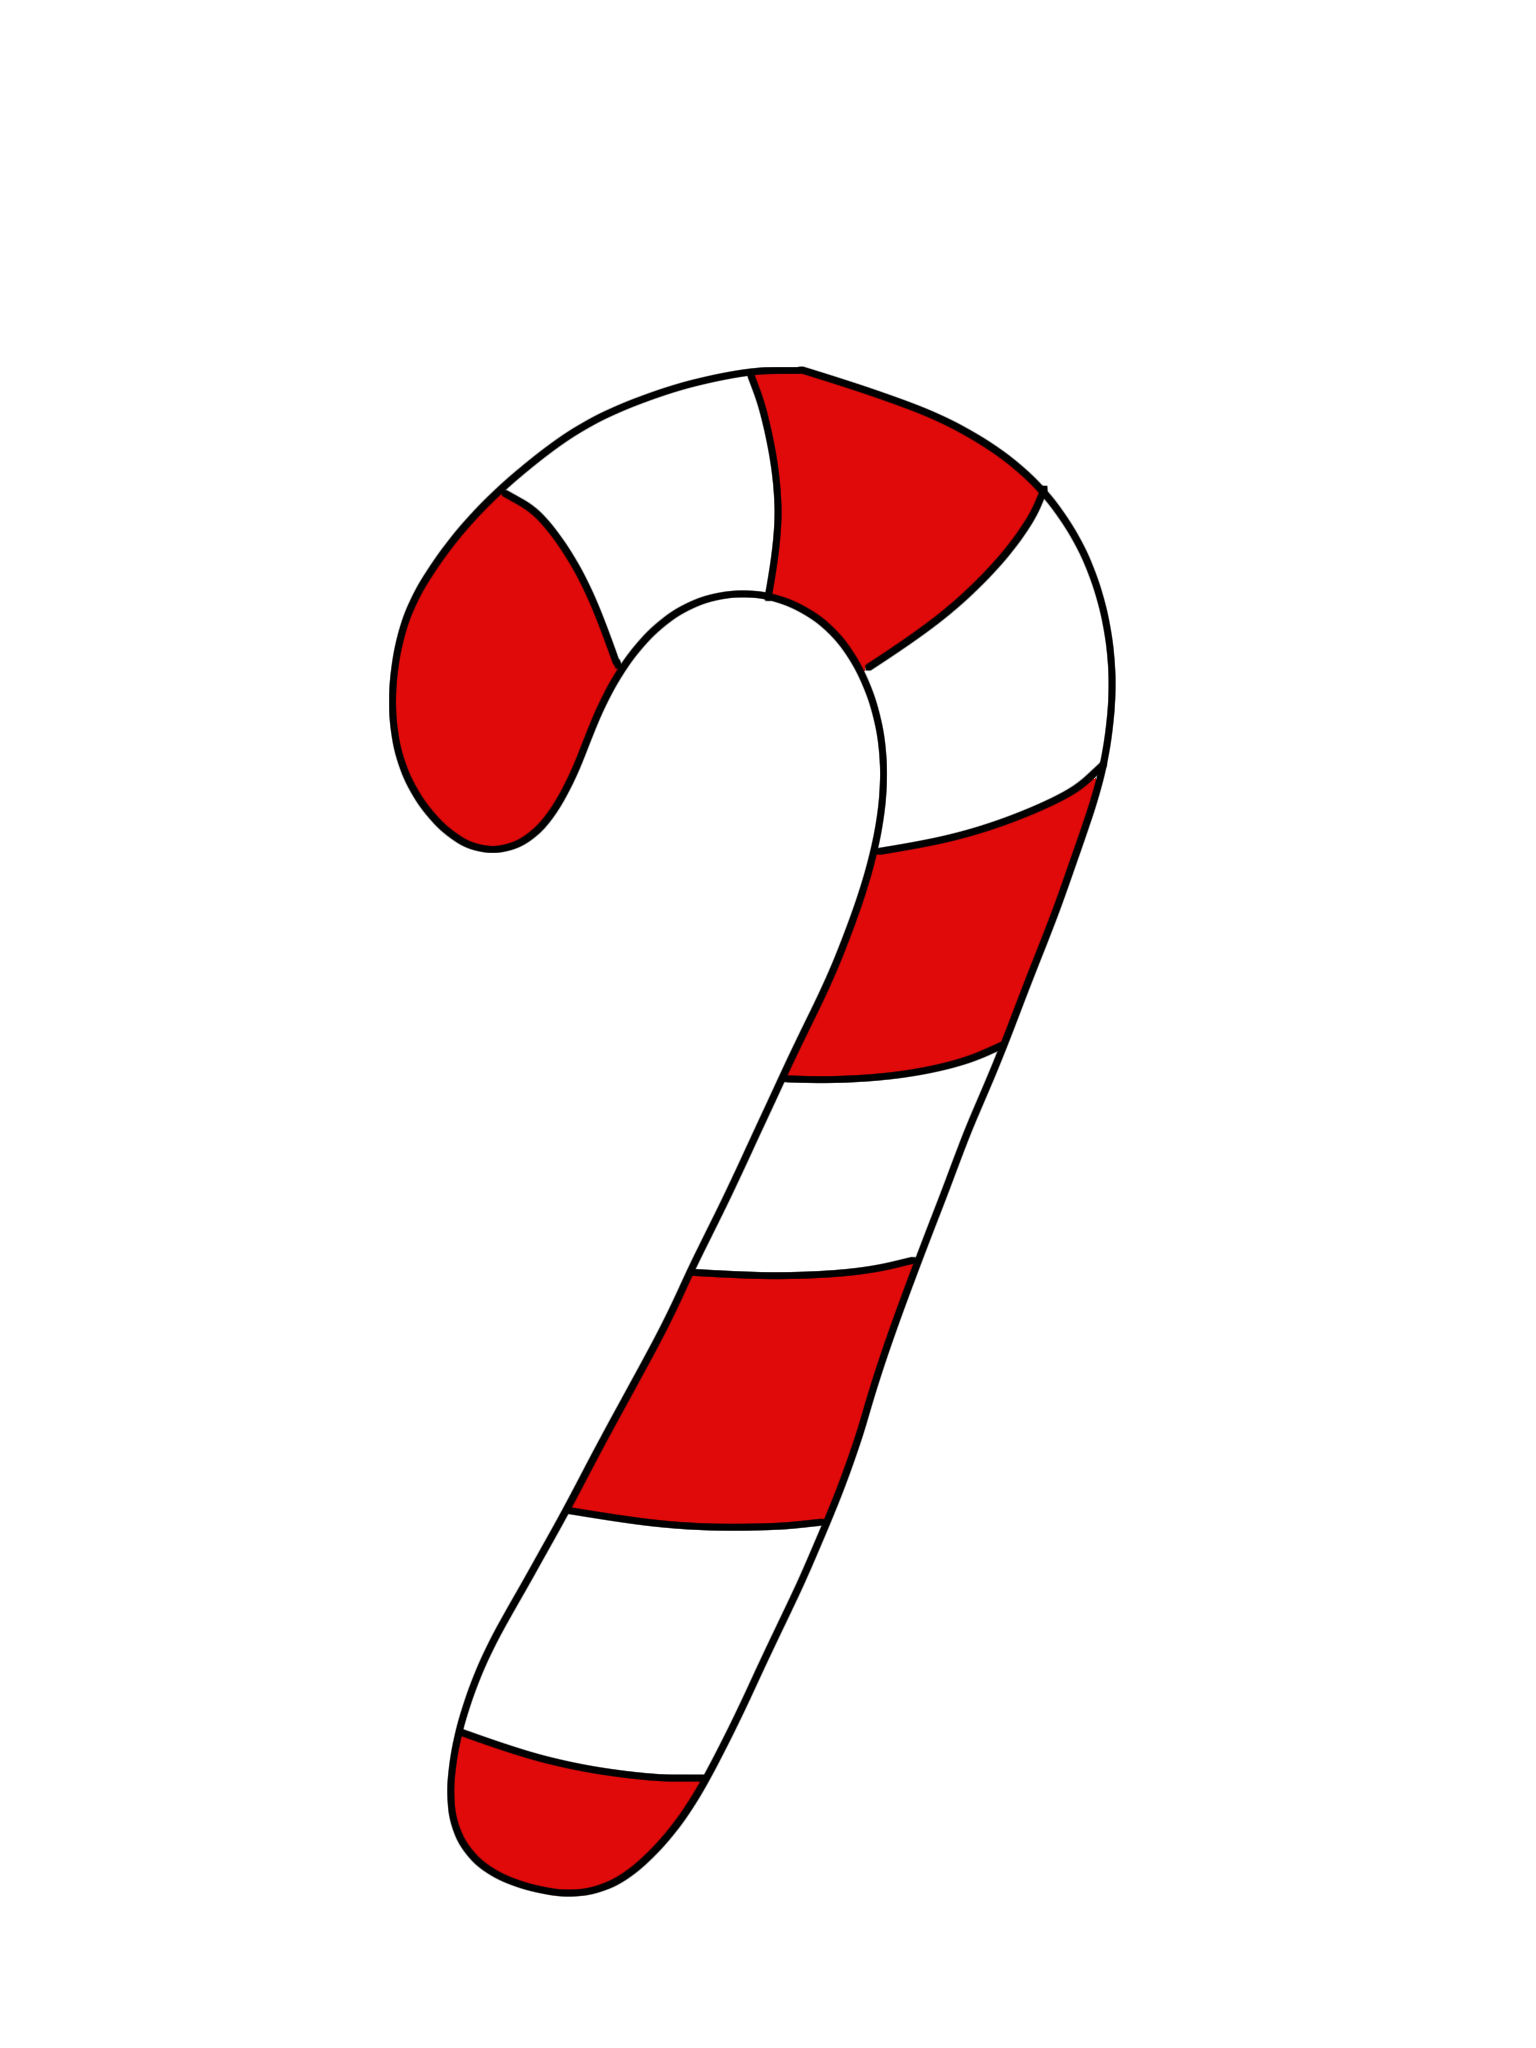 Candy cane clipart transparent background clip art black and white stock Free Pictures Of Candy Canes, Download Free Clip Art, Free Clip Art ... clip art black and white stock